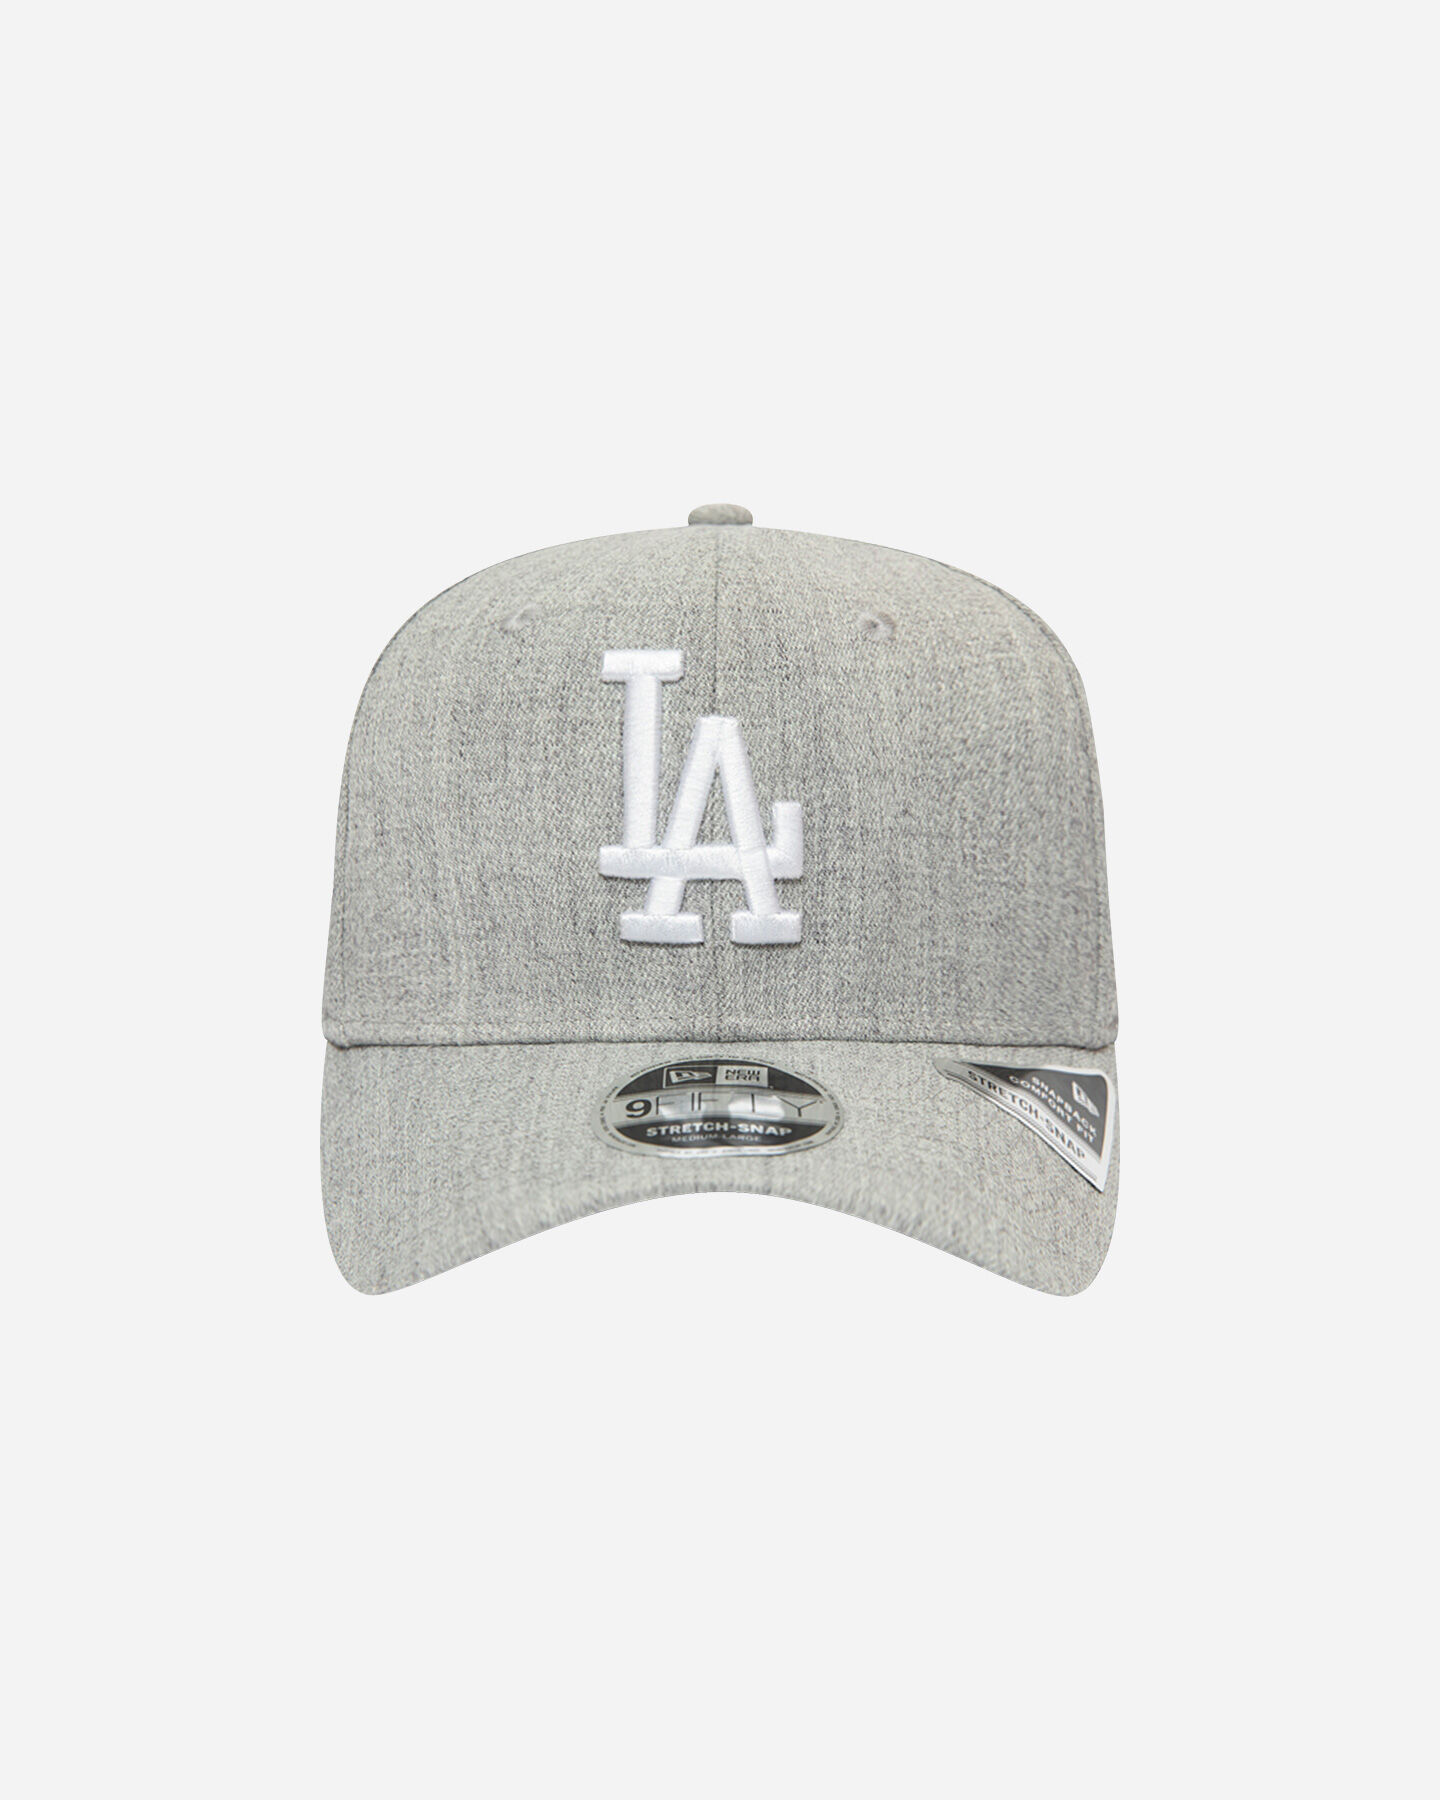 Cappellino NEW ERA LOS ANGELES DODGERS 9FIFTY HEATHER BASE S5170126 scatto 1